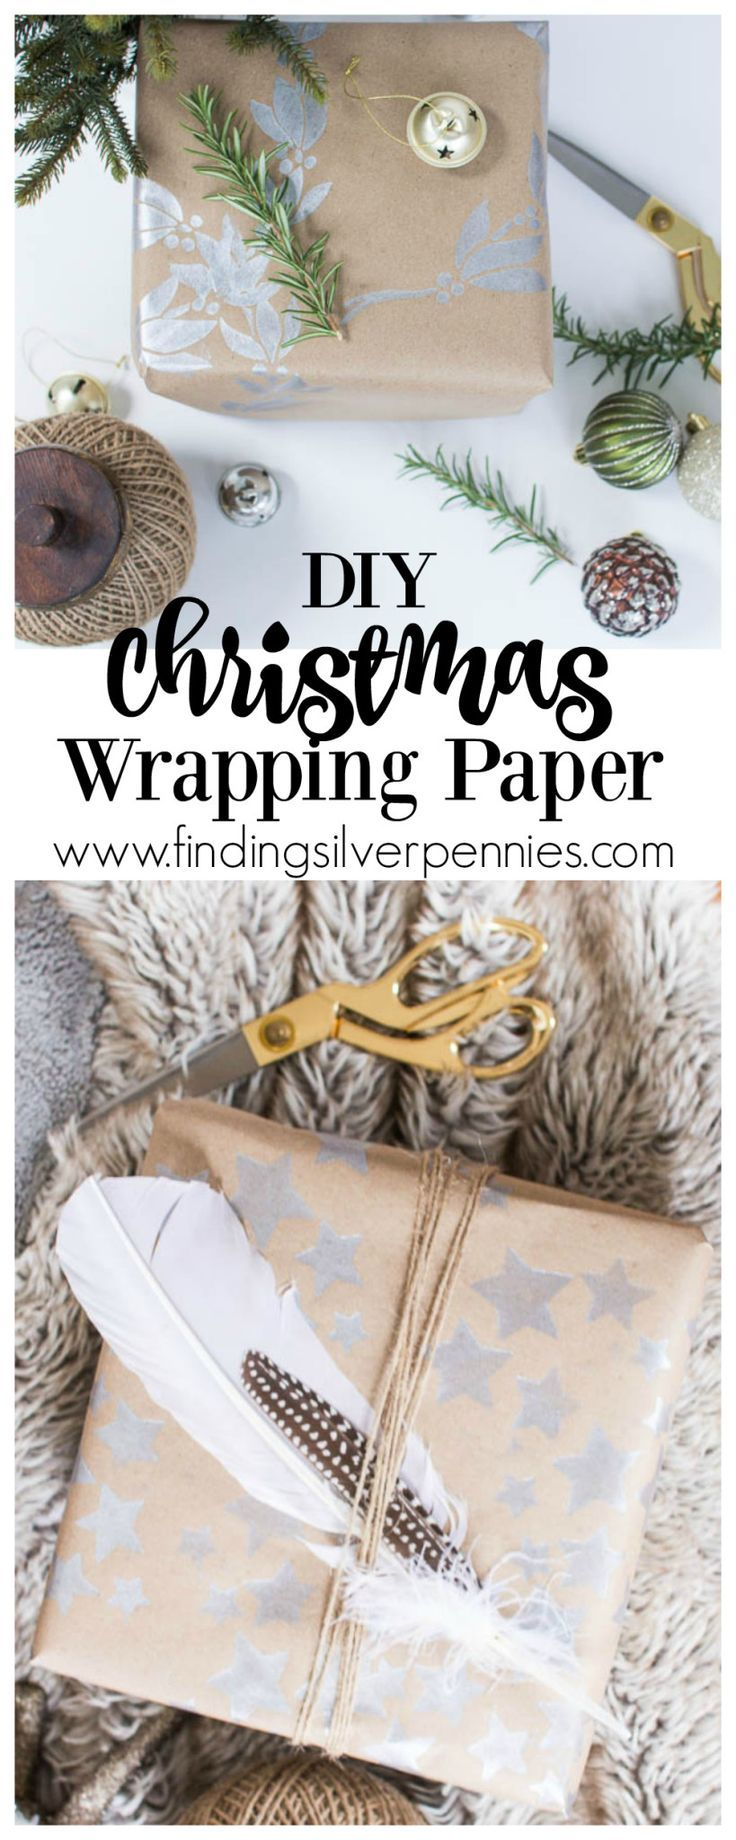 DIY Christmas Wrapping Paper by Finding Silver Pennies #sponsored